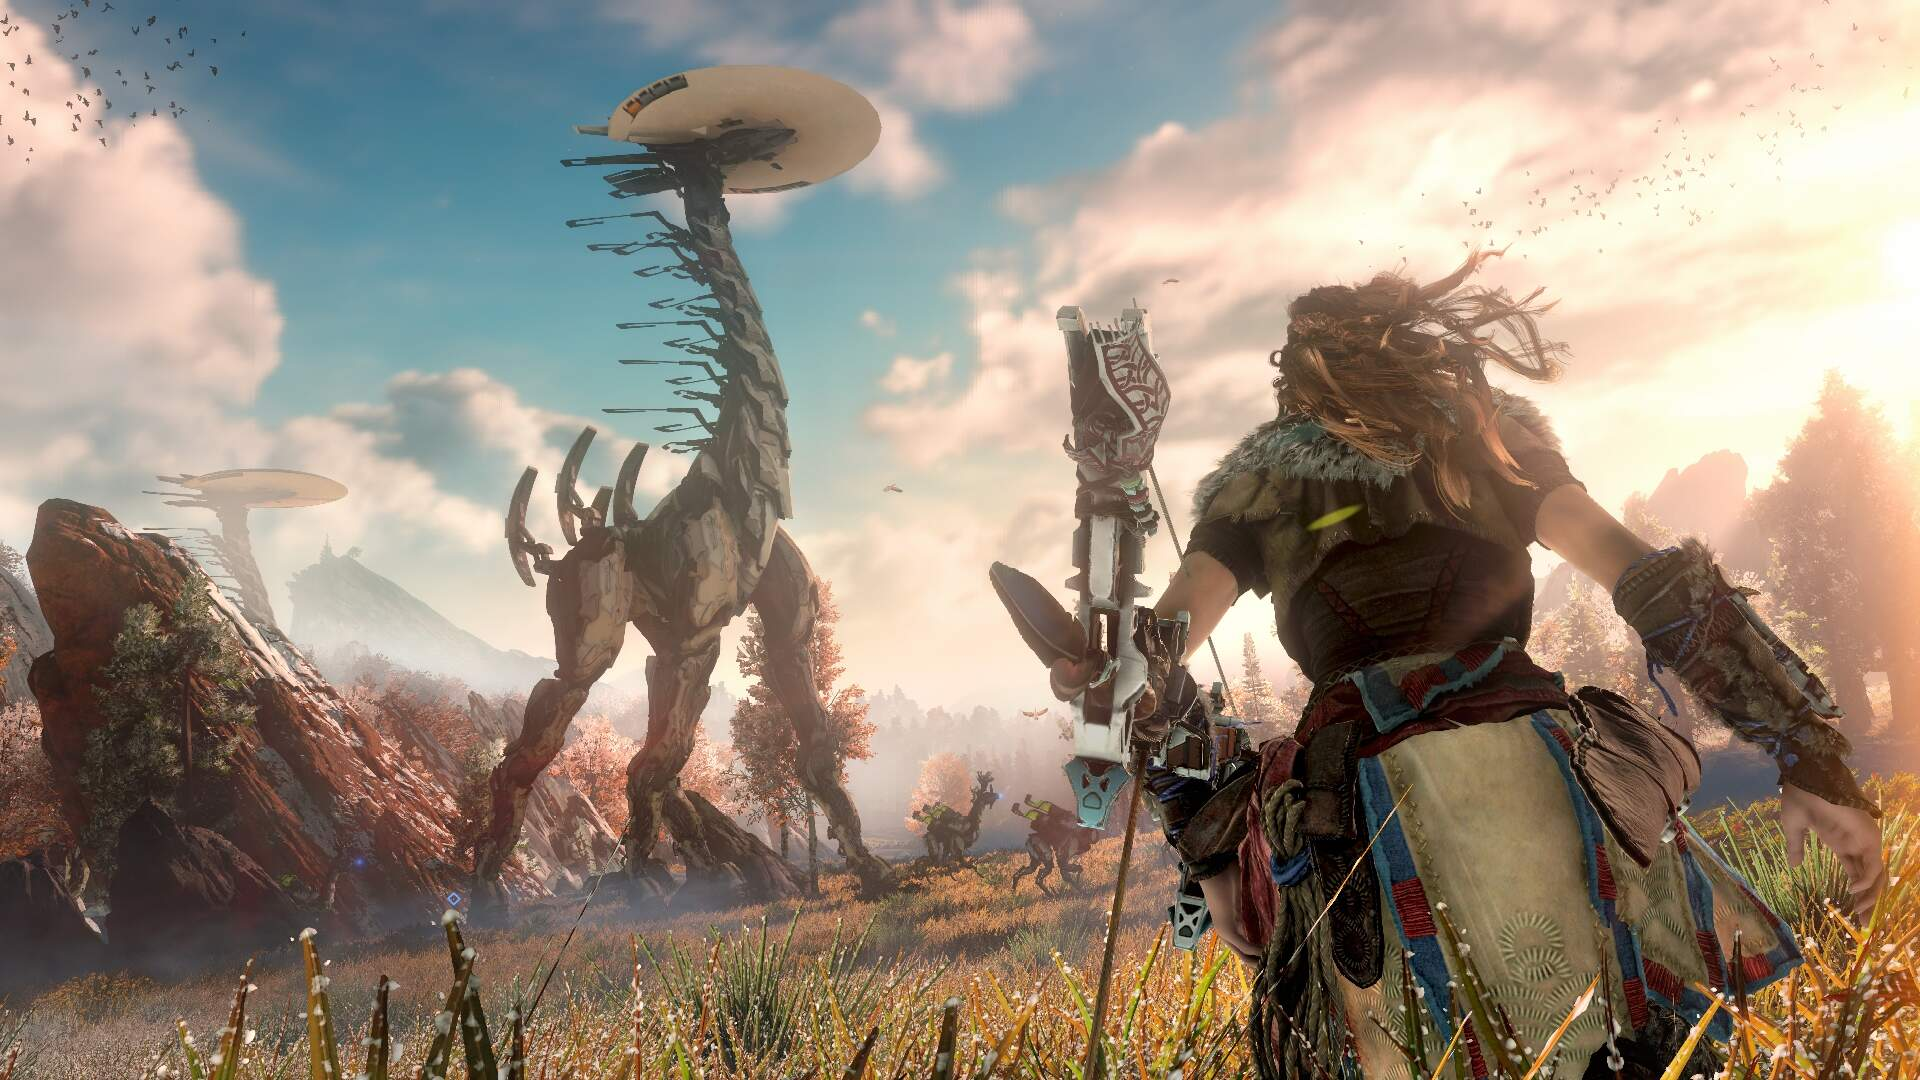 Horizon Zero Dawn Sets August Release Date on PC, Sparks Pricing Controversy